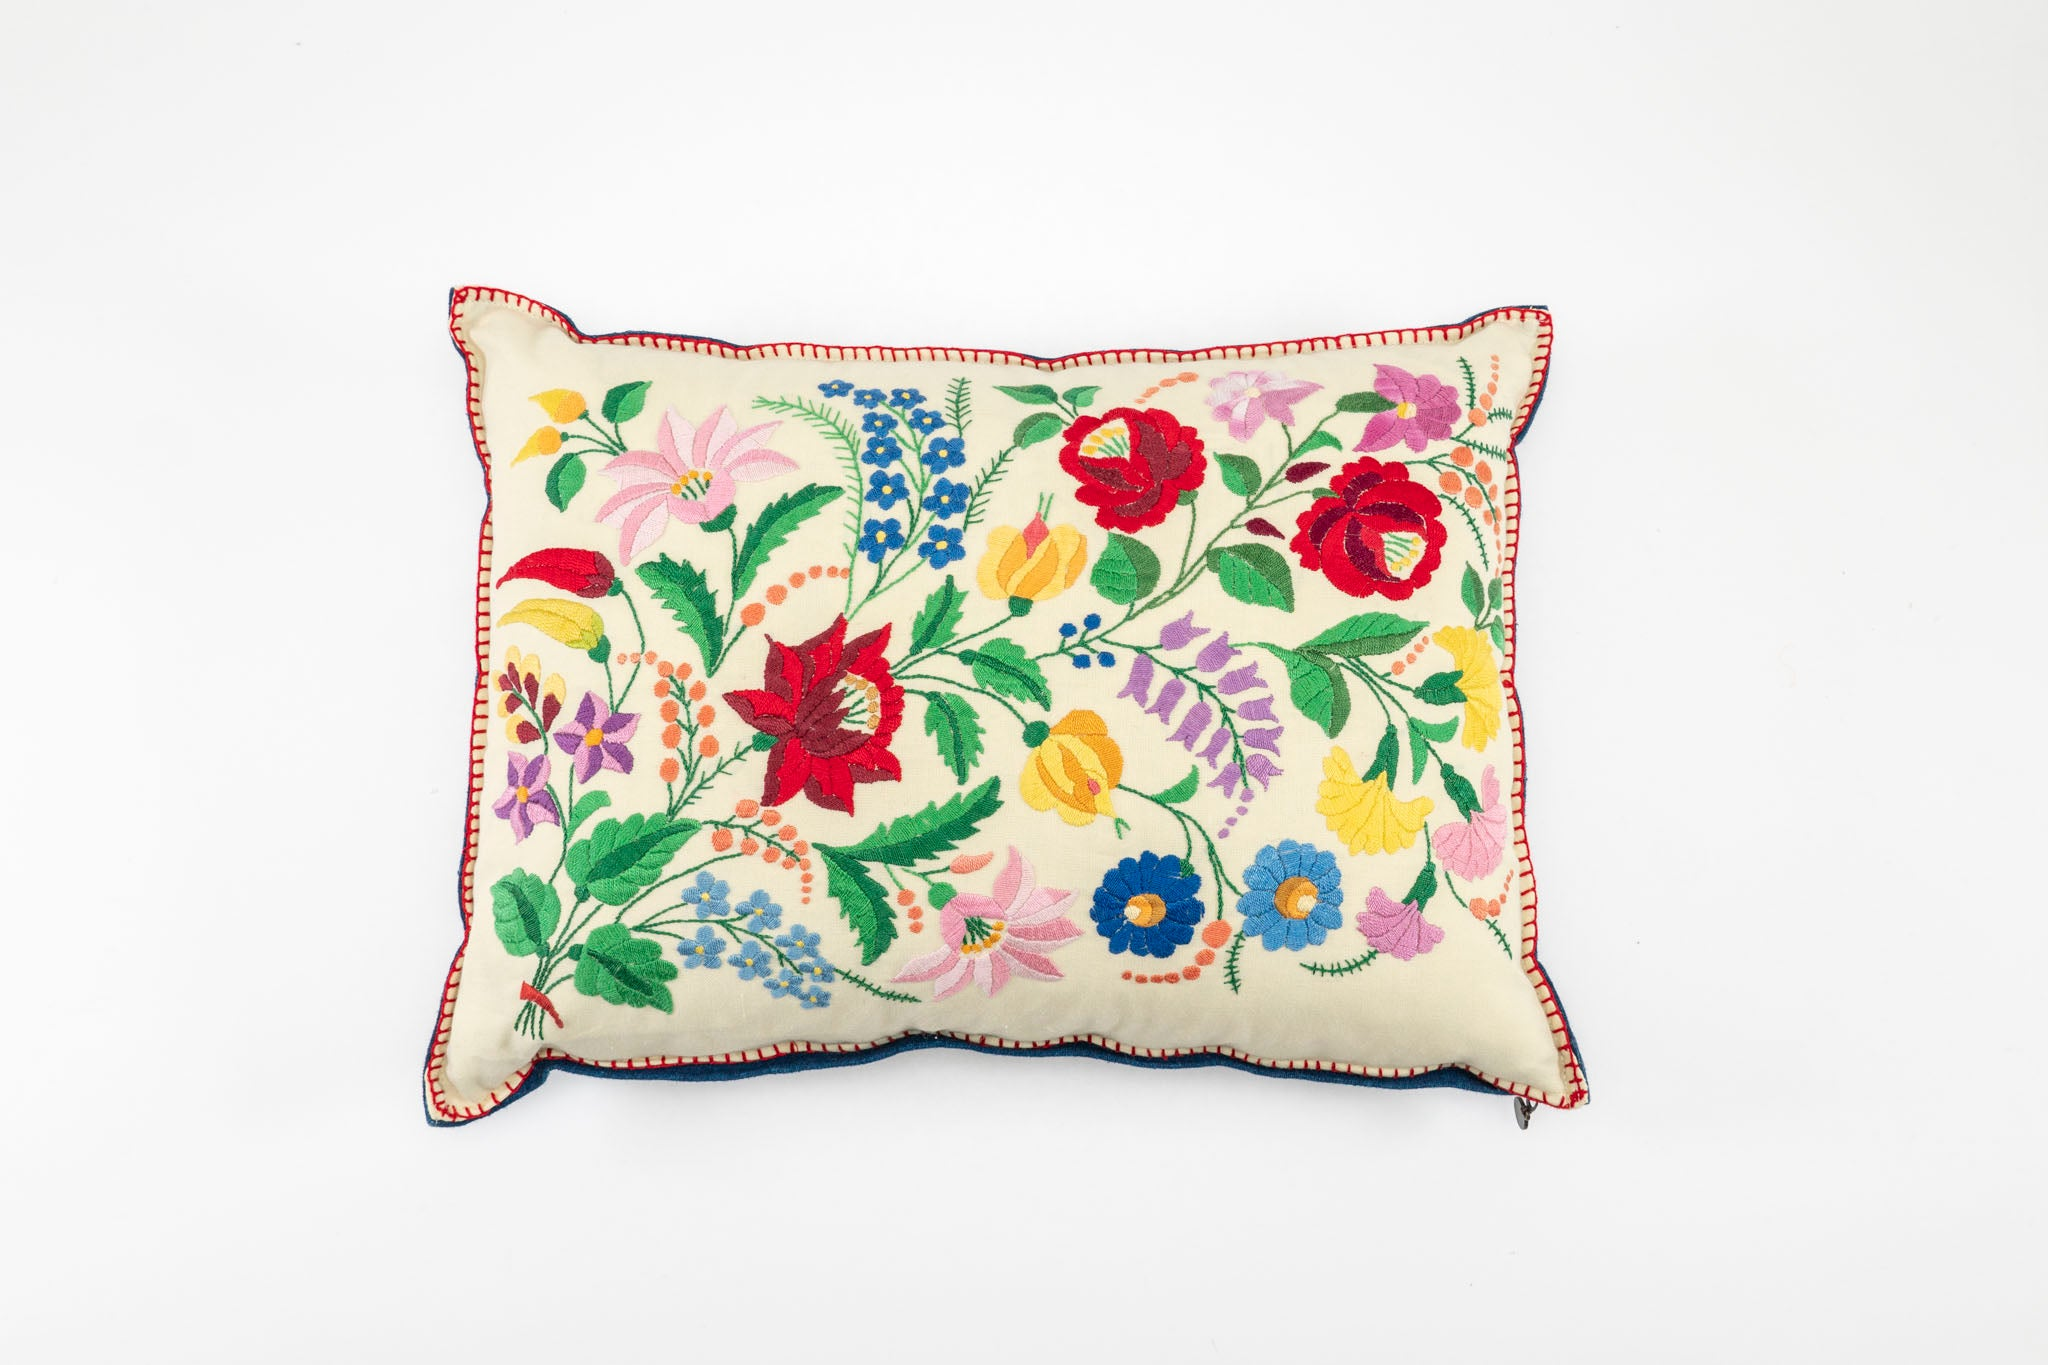 Pillow: Embroidered antique handwoven Hungarian hemp - P124